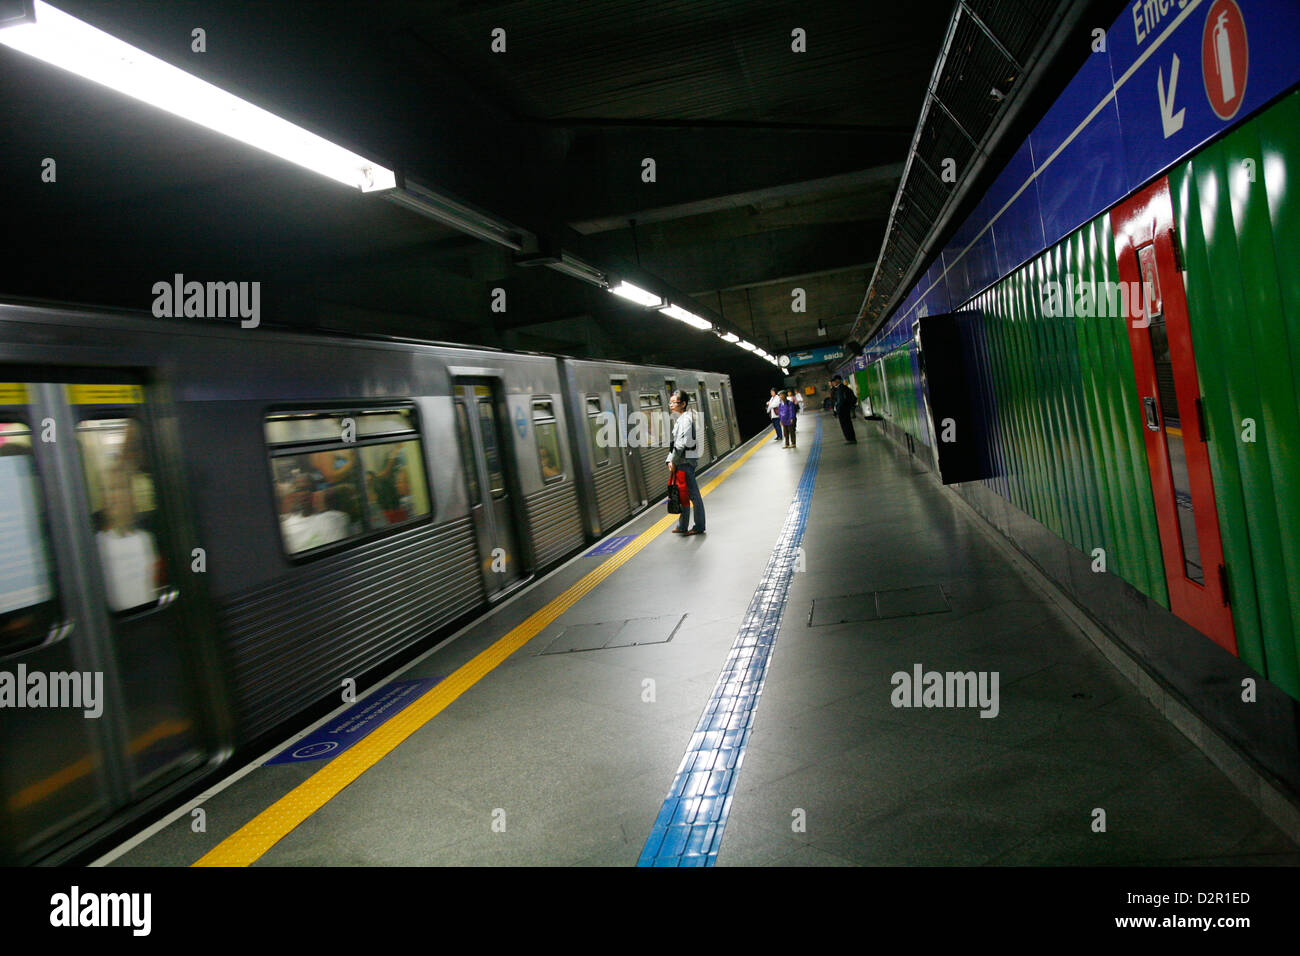 Metro station, Sao Paulo, Brazil, South America - Stock Image